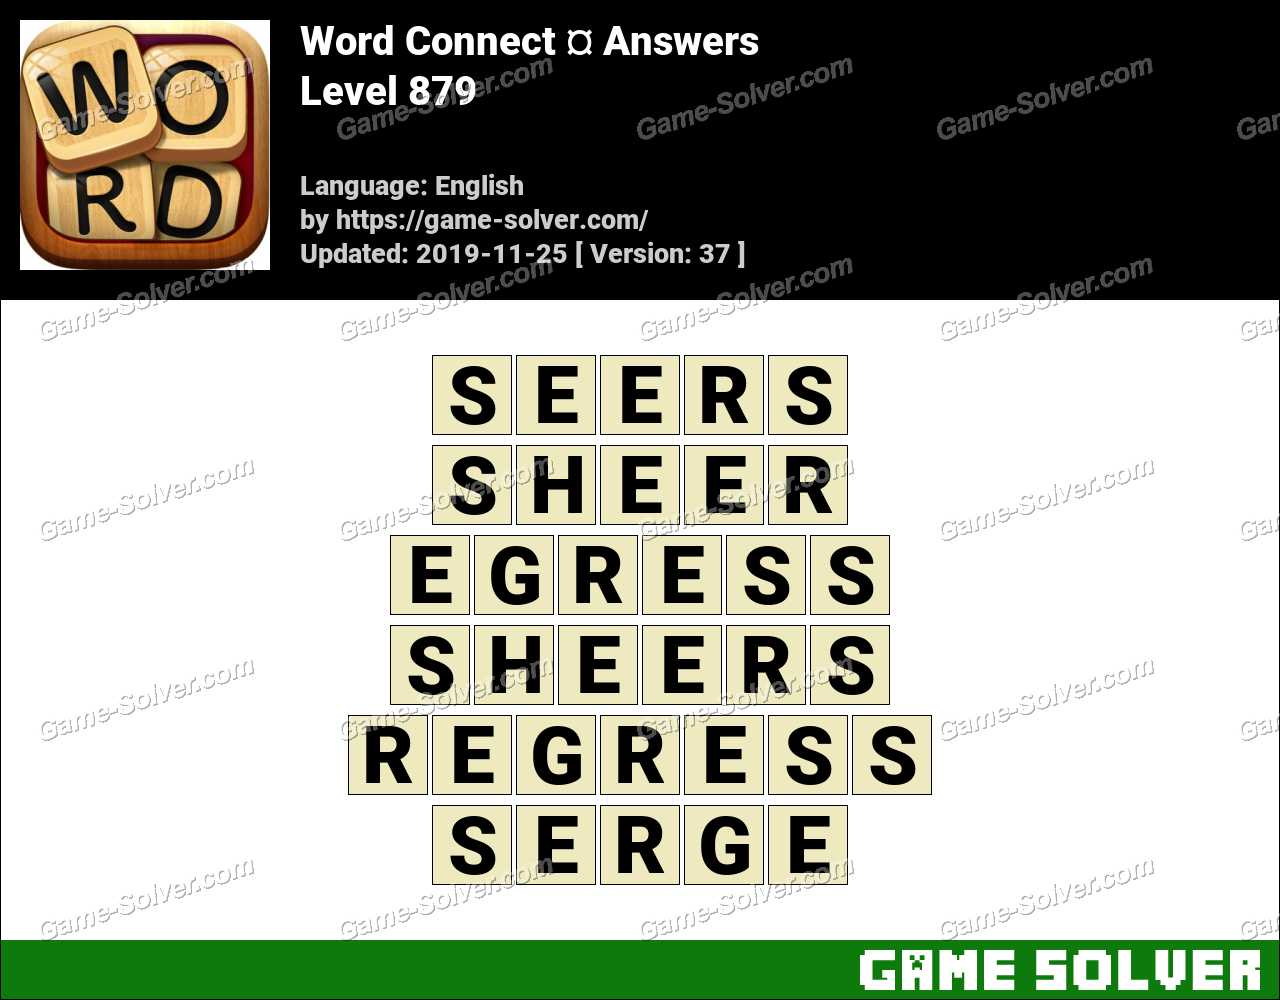 Word Connect Level 879 Answers